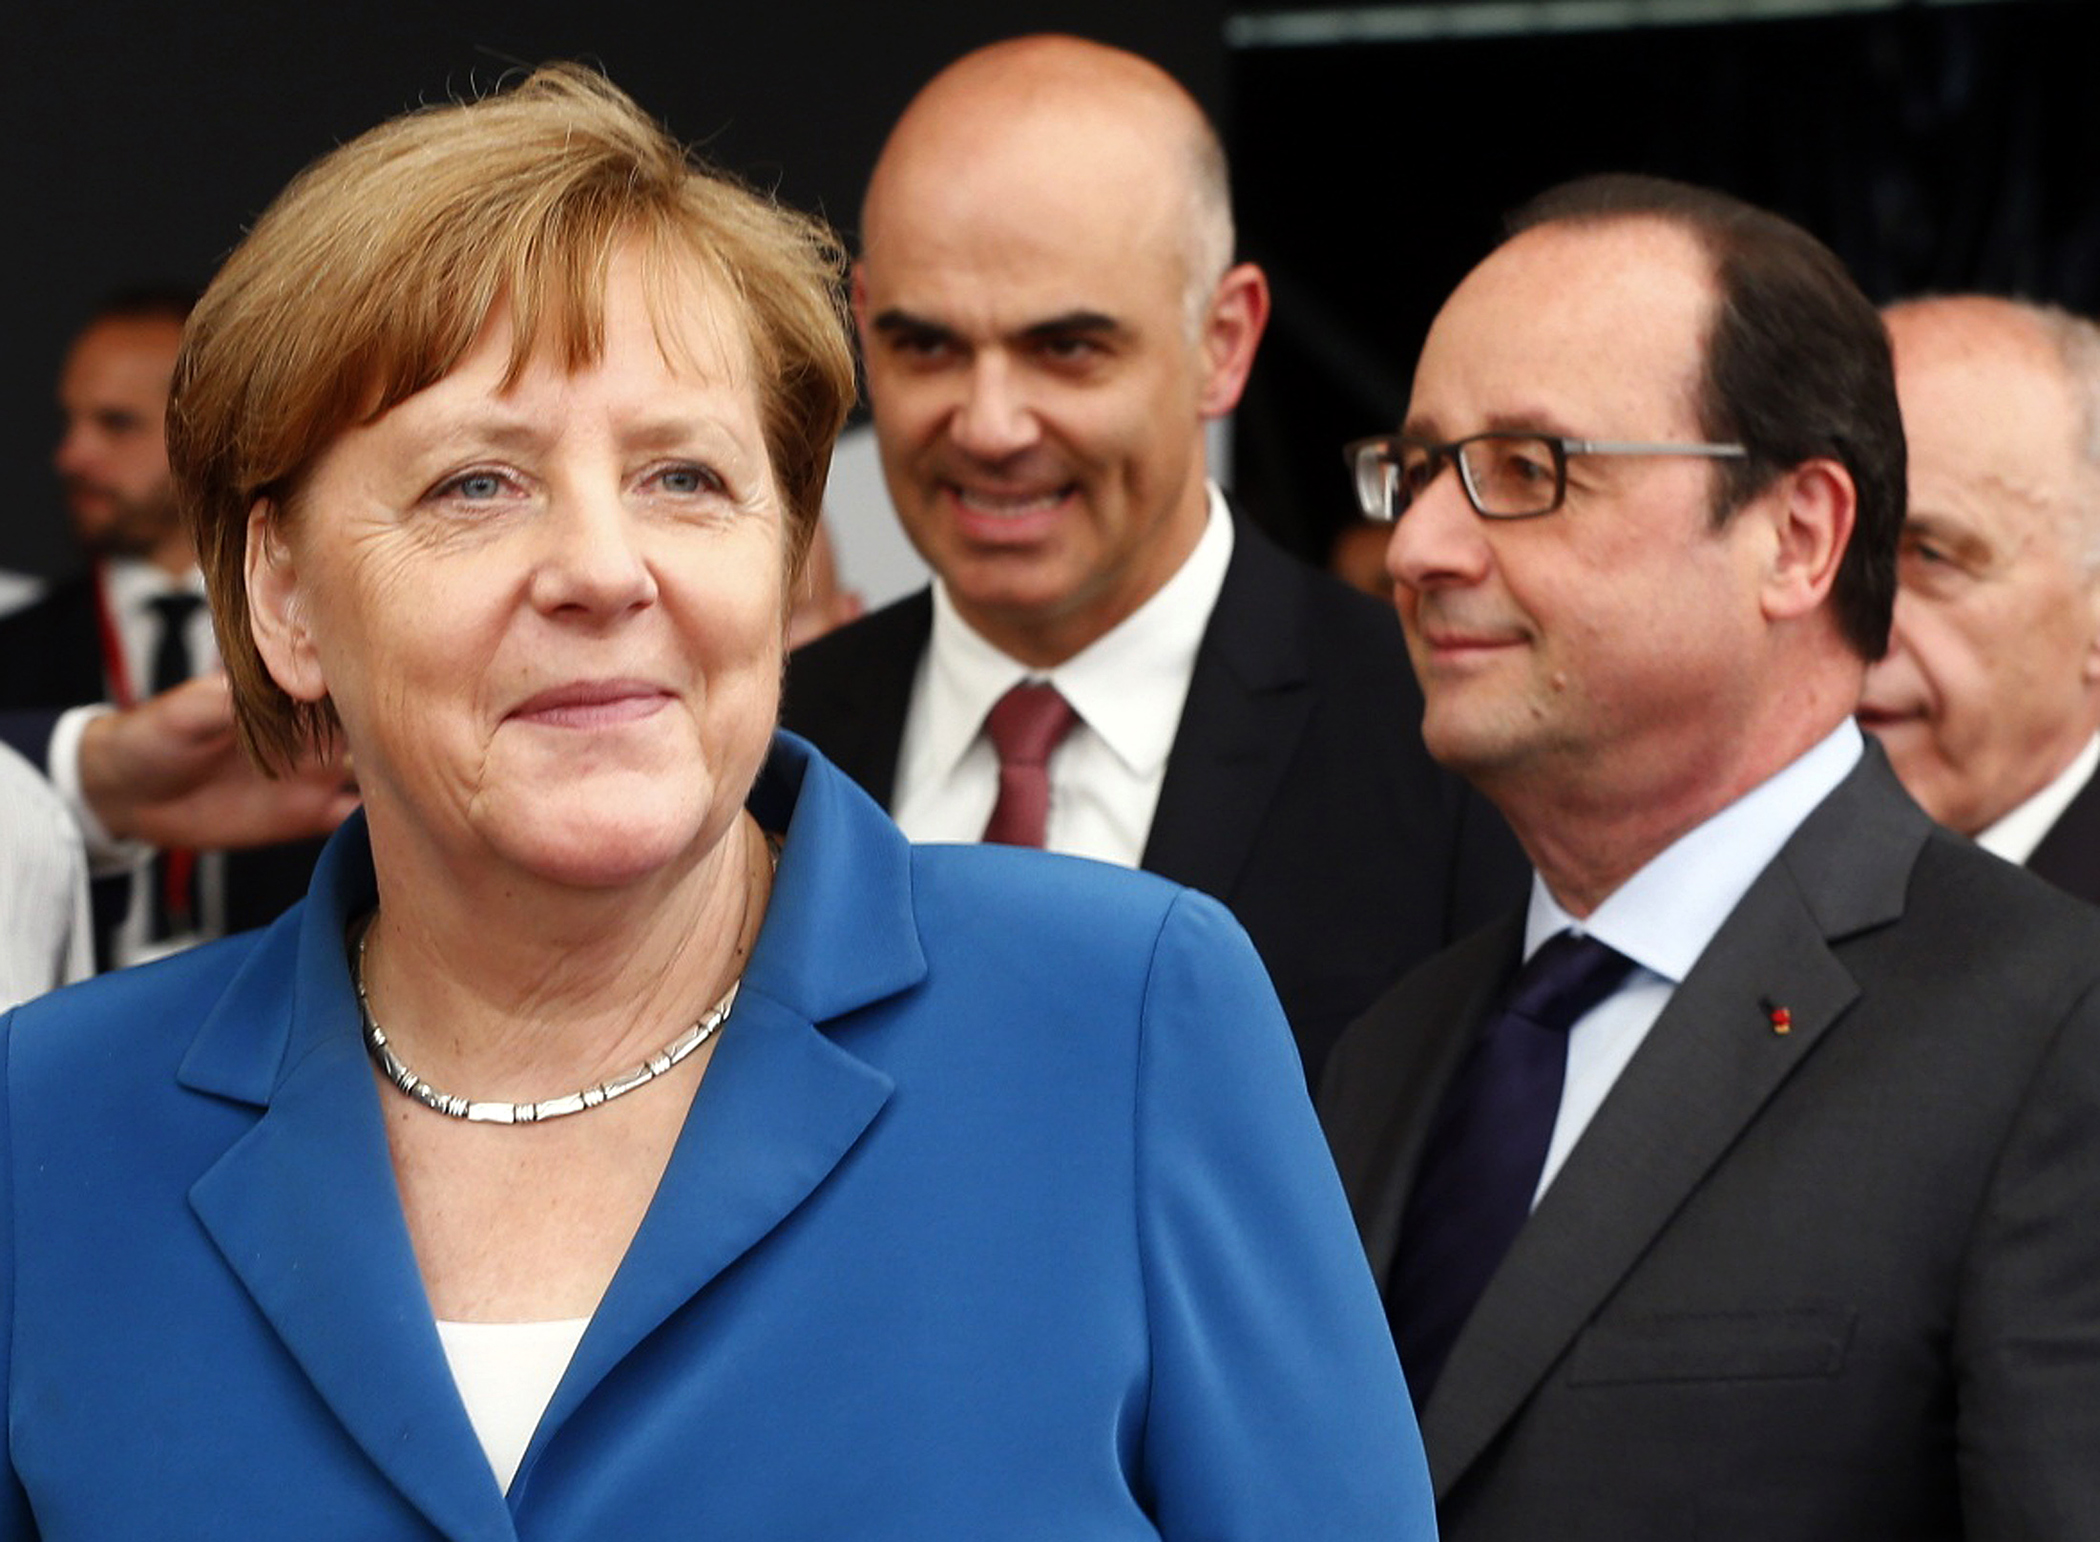 (L-R) German Chancellor Angela Merkel, Swiss Interior Minister Alain Berset and French President Francois Hollande arrive in Pollegio for the opening ceremony of the NEAT Gotthard Base Tunnel, the world's longest and deepest rail tunnel, Switzerland June 1, 2016.